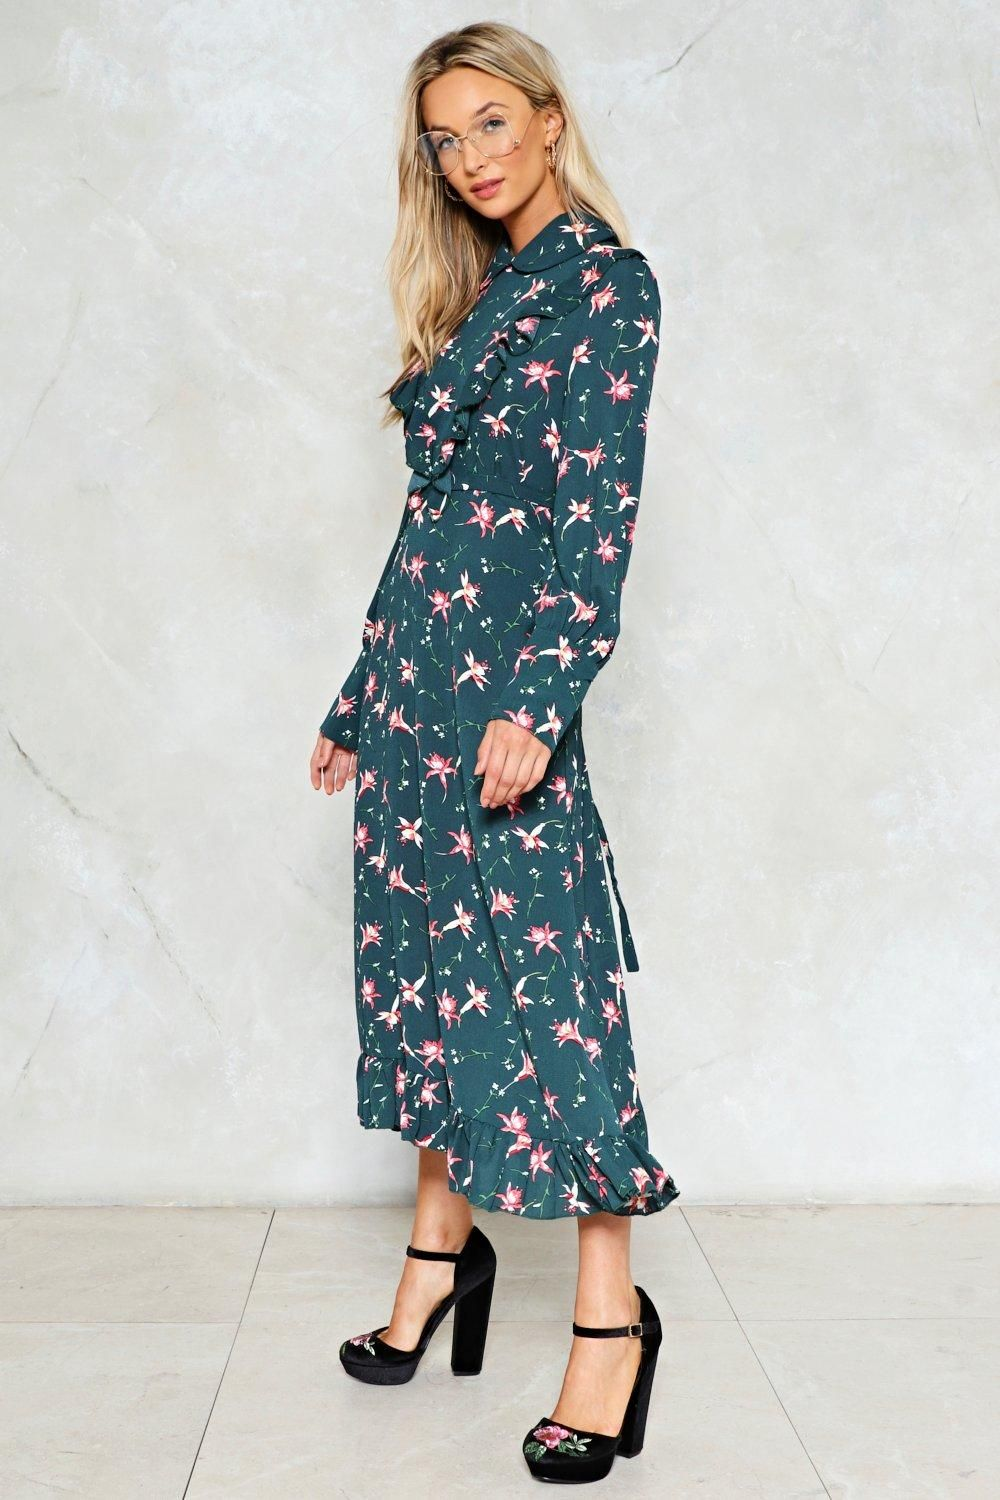 adb961b4e138e The You ll Grow a Long Way Dress features a floral print throughout